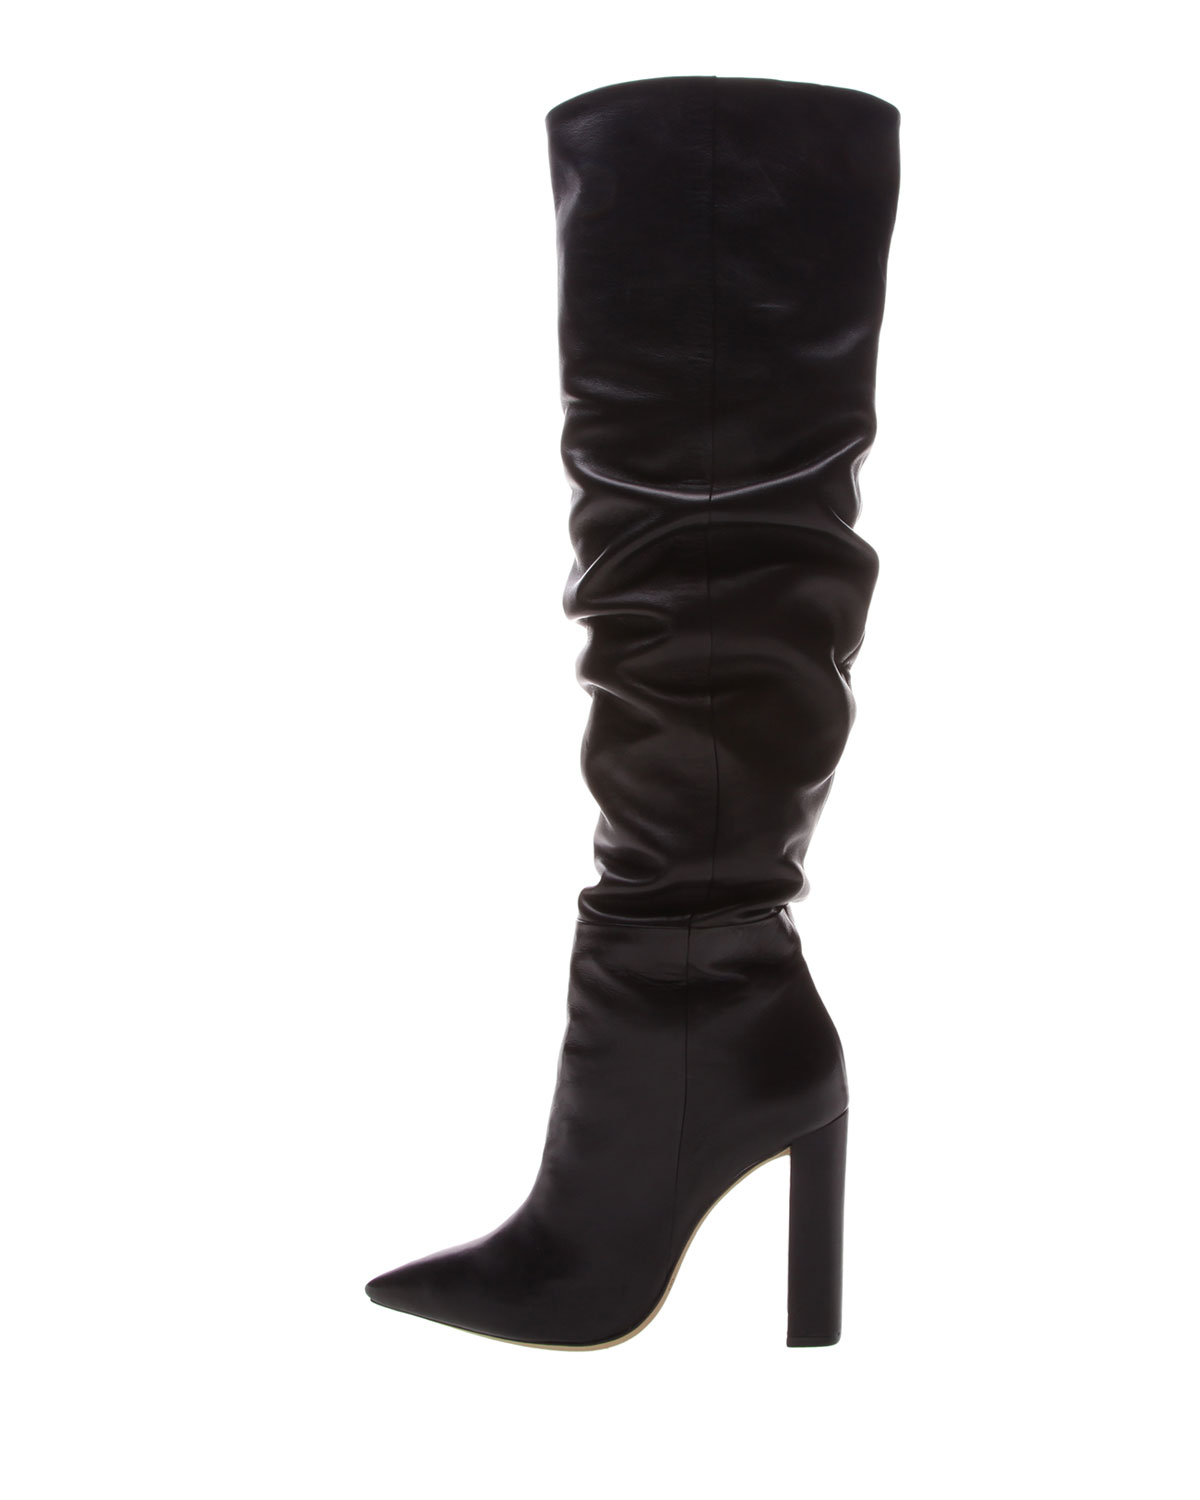 ALEXANDRE BIRMAN ANNA SLOUCHY OVER-THE-KNEE BOOTS